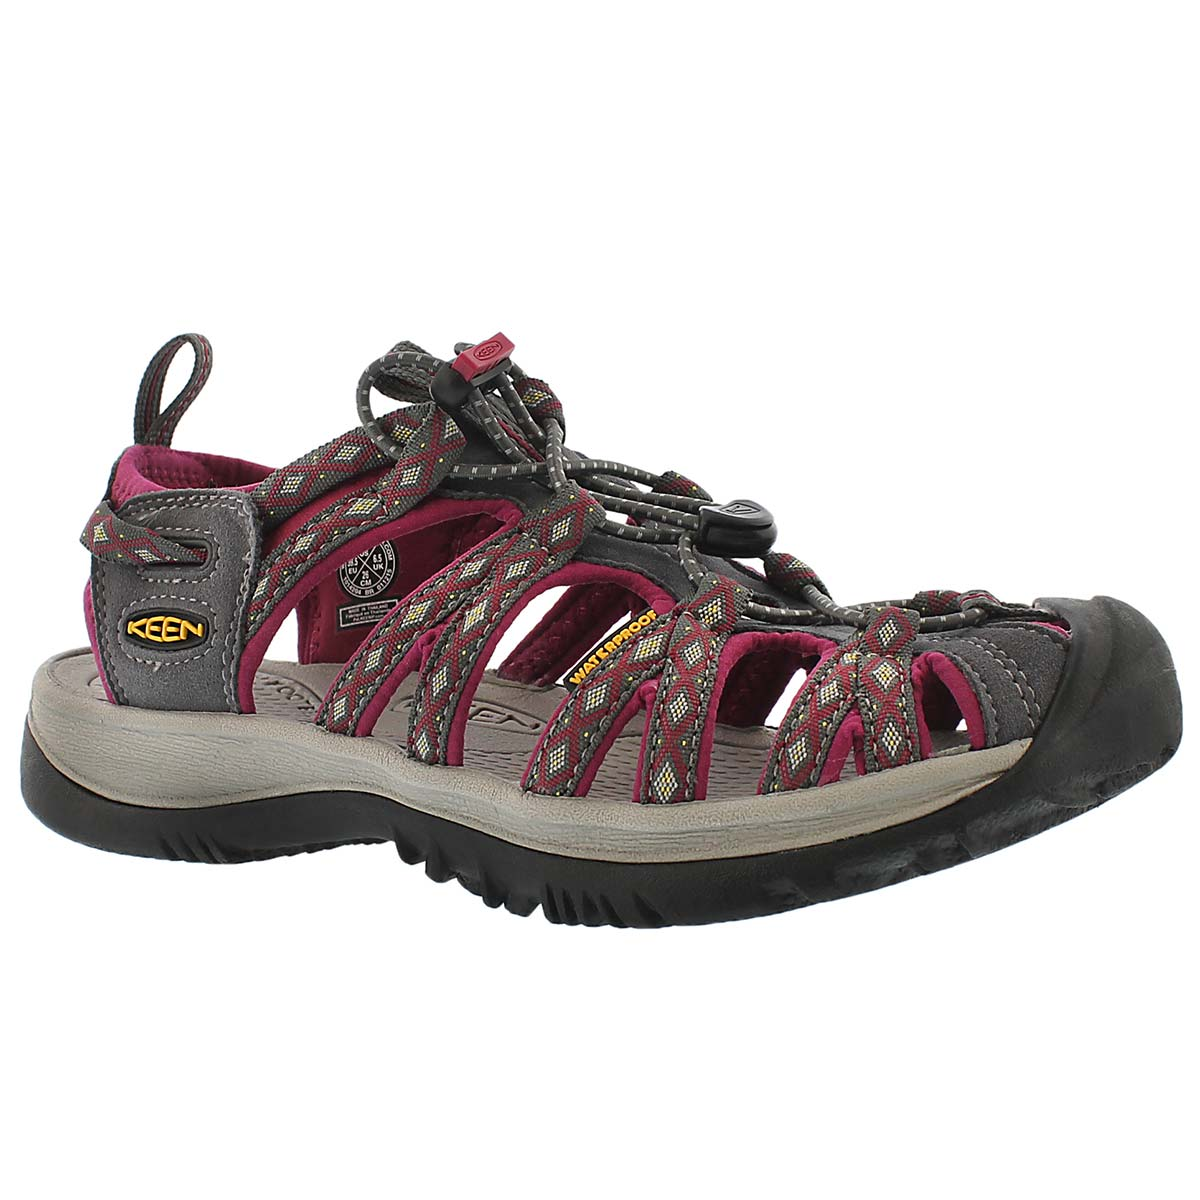 Women's WHISPER magnet grey/sangria sport sandals